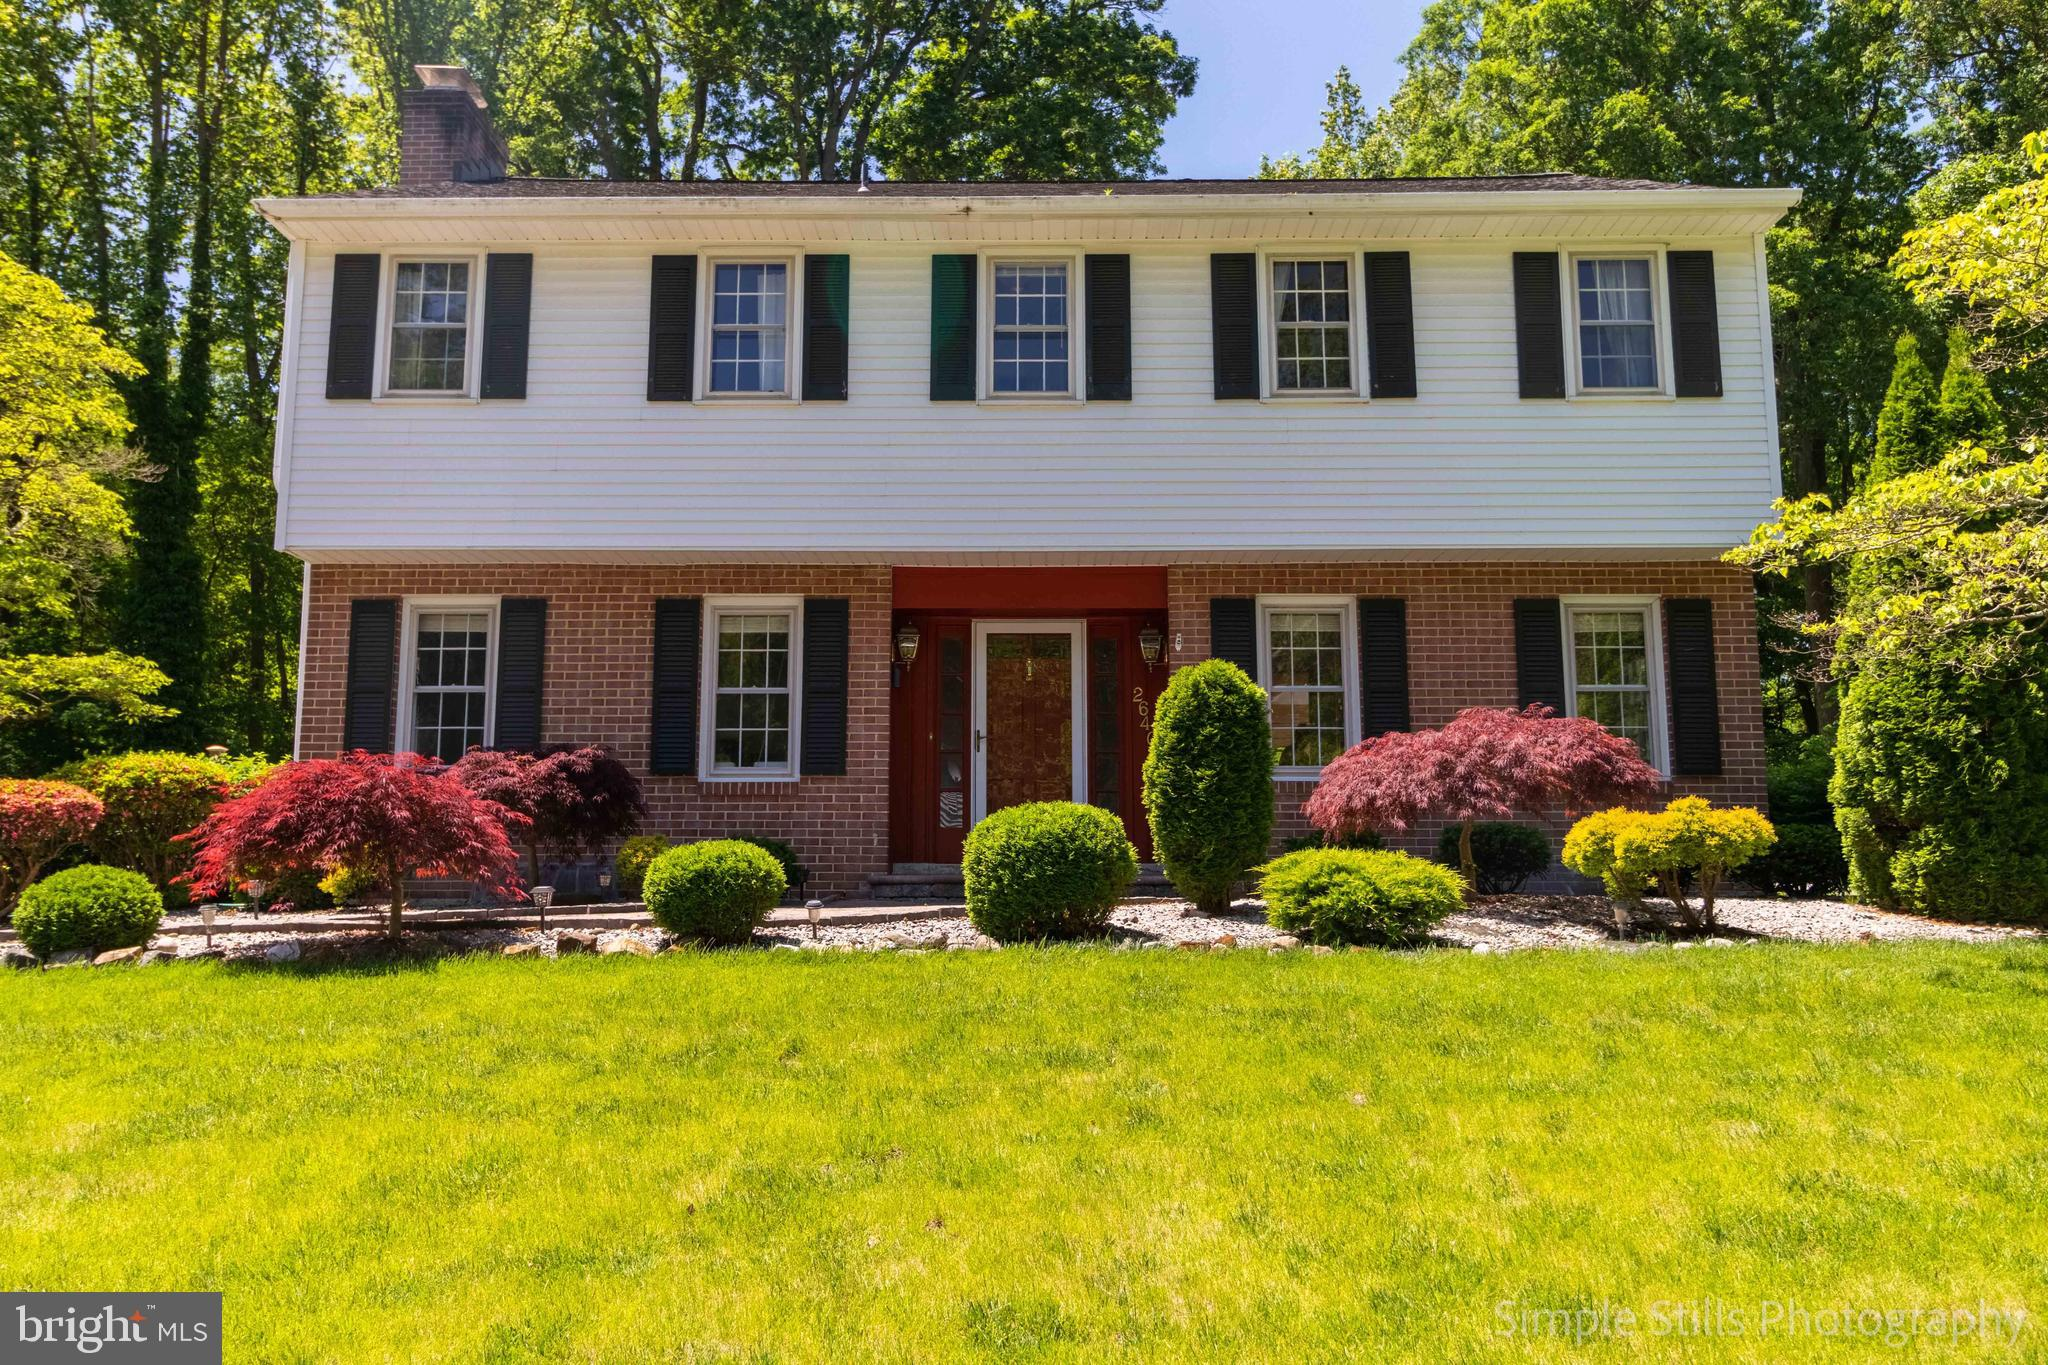 This is the one you've been waiting for in fabulous N. Wilm community of Foulk Woods.  This spacious home is on almost an acre of land and is one one of the larger lots in the community.  Beautiful backyard has mature trees and great open space.  The nice pavers walk way lead you to the front of th house  through the gorgeous landscaped.  The yard is meticulously maintained and the interior is as well, price of ownership shows in every aspect of this home.  Perfect hardwood floors are throughout the house.  The large eat in kitchen offers Corian counter tops, Cherry wood cabinets, gas cooking on a Bosch cook top, dual wall ovens, two sinks, two dishwashers, recessed lighting, skylights, and French doors to lead you out to a large patio and gorgeous backyard with beautiful mature trees.  There are fireplaces in family room and also the living room.  You will love the updated master suite, the bathroom has a nice open design and modern shower, with updated fixtures and an new dual vanity.  It even has a large sitting area / office with dual skylights just on the other side of the bathroom.  The basement is nicely finished and has its own full bath as well as the the 5th bedroom.  New HVAC system installed 2017, the roof in 2007 and the driveway not only extended but widened as well.  This house is super clean, fabulous condition, and has one of the nicest views in the neighborhood~ nothing to do but move in.